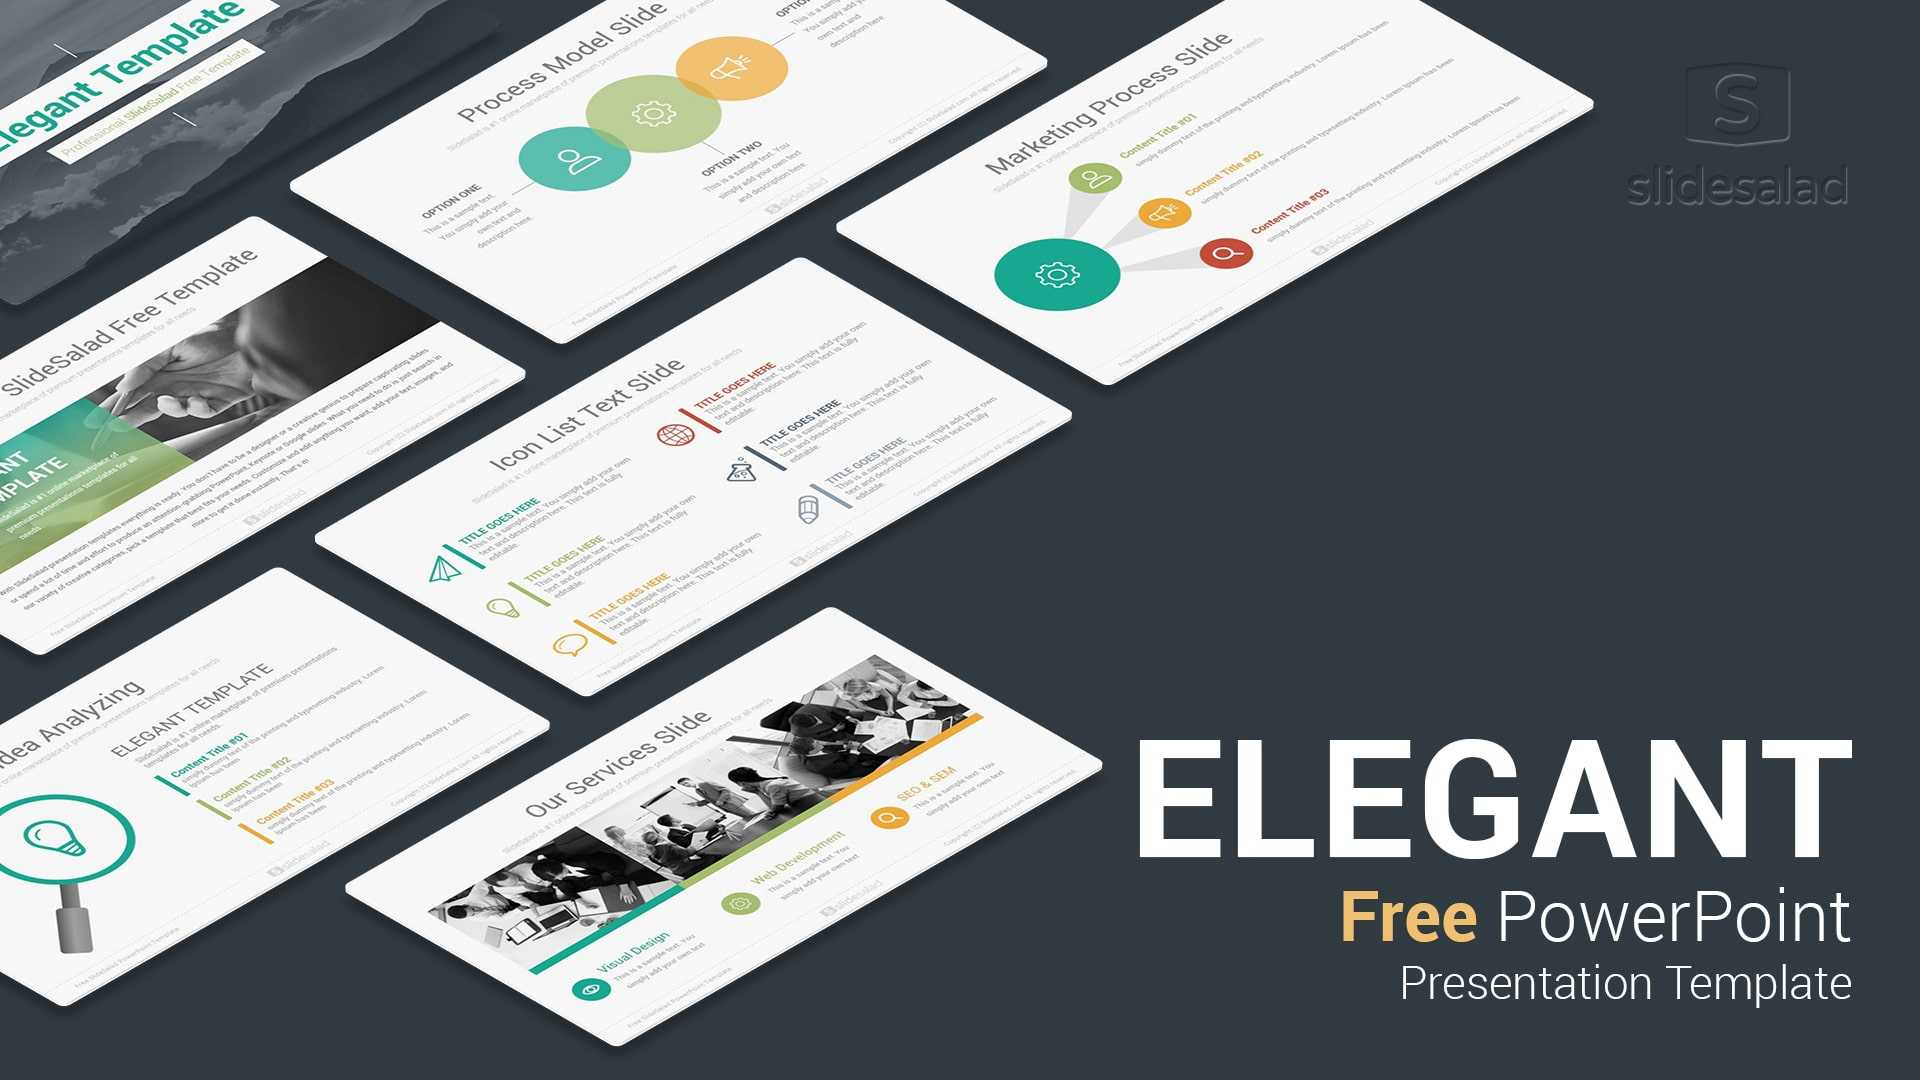 Elegant Free Download Powerpoint Templates For Presentation Pertaining To Free Powerpoint Presentation Templates Downloads